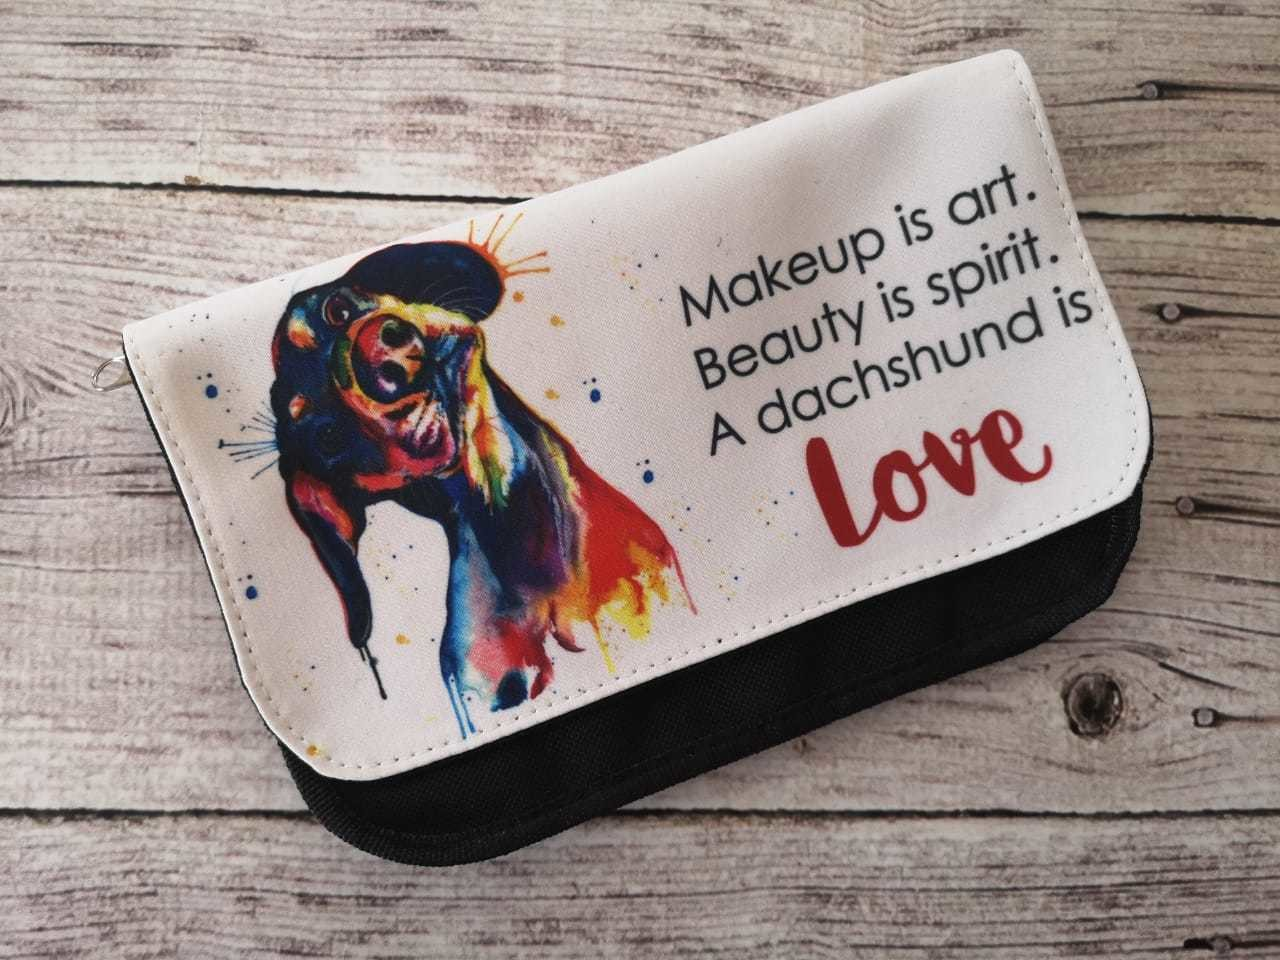 Make-Up Bag - Make-up is Art. Beauty is Spirit. A Dachshund is Love